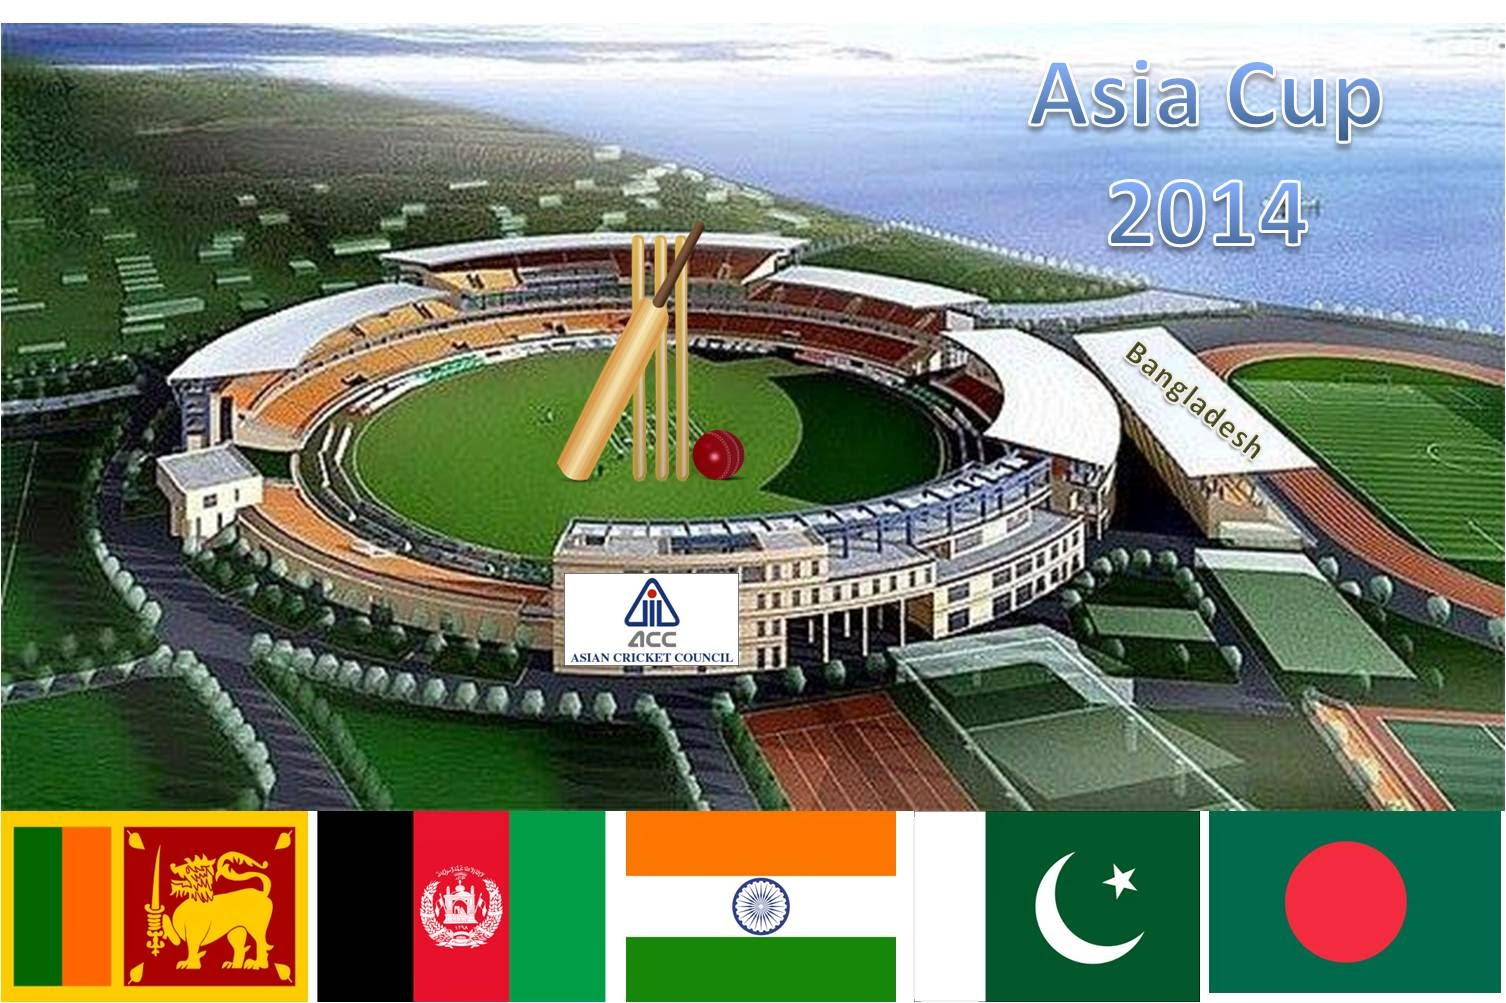 2014 Asia Cup